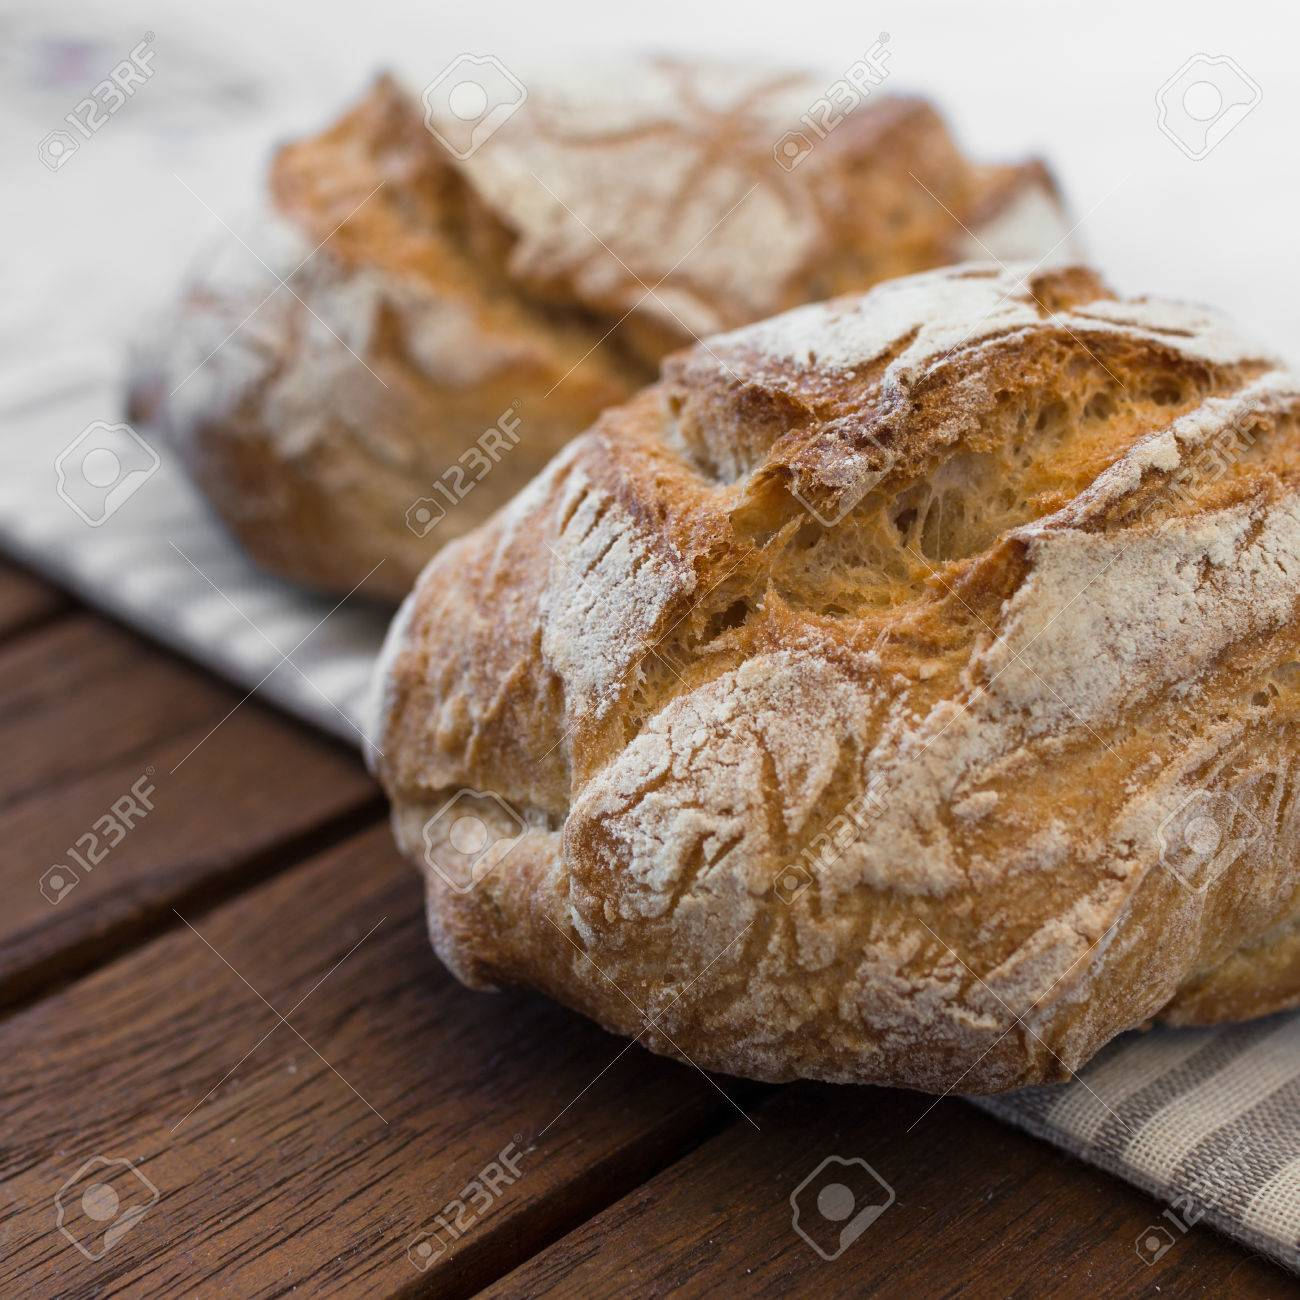 Extreme Clos Up Of Rustic Italian Bread Isolated On Background Out Focus